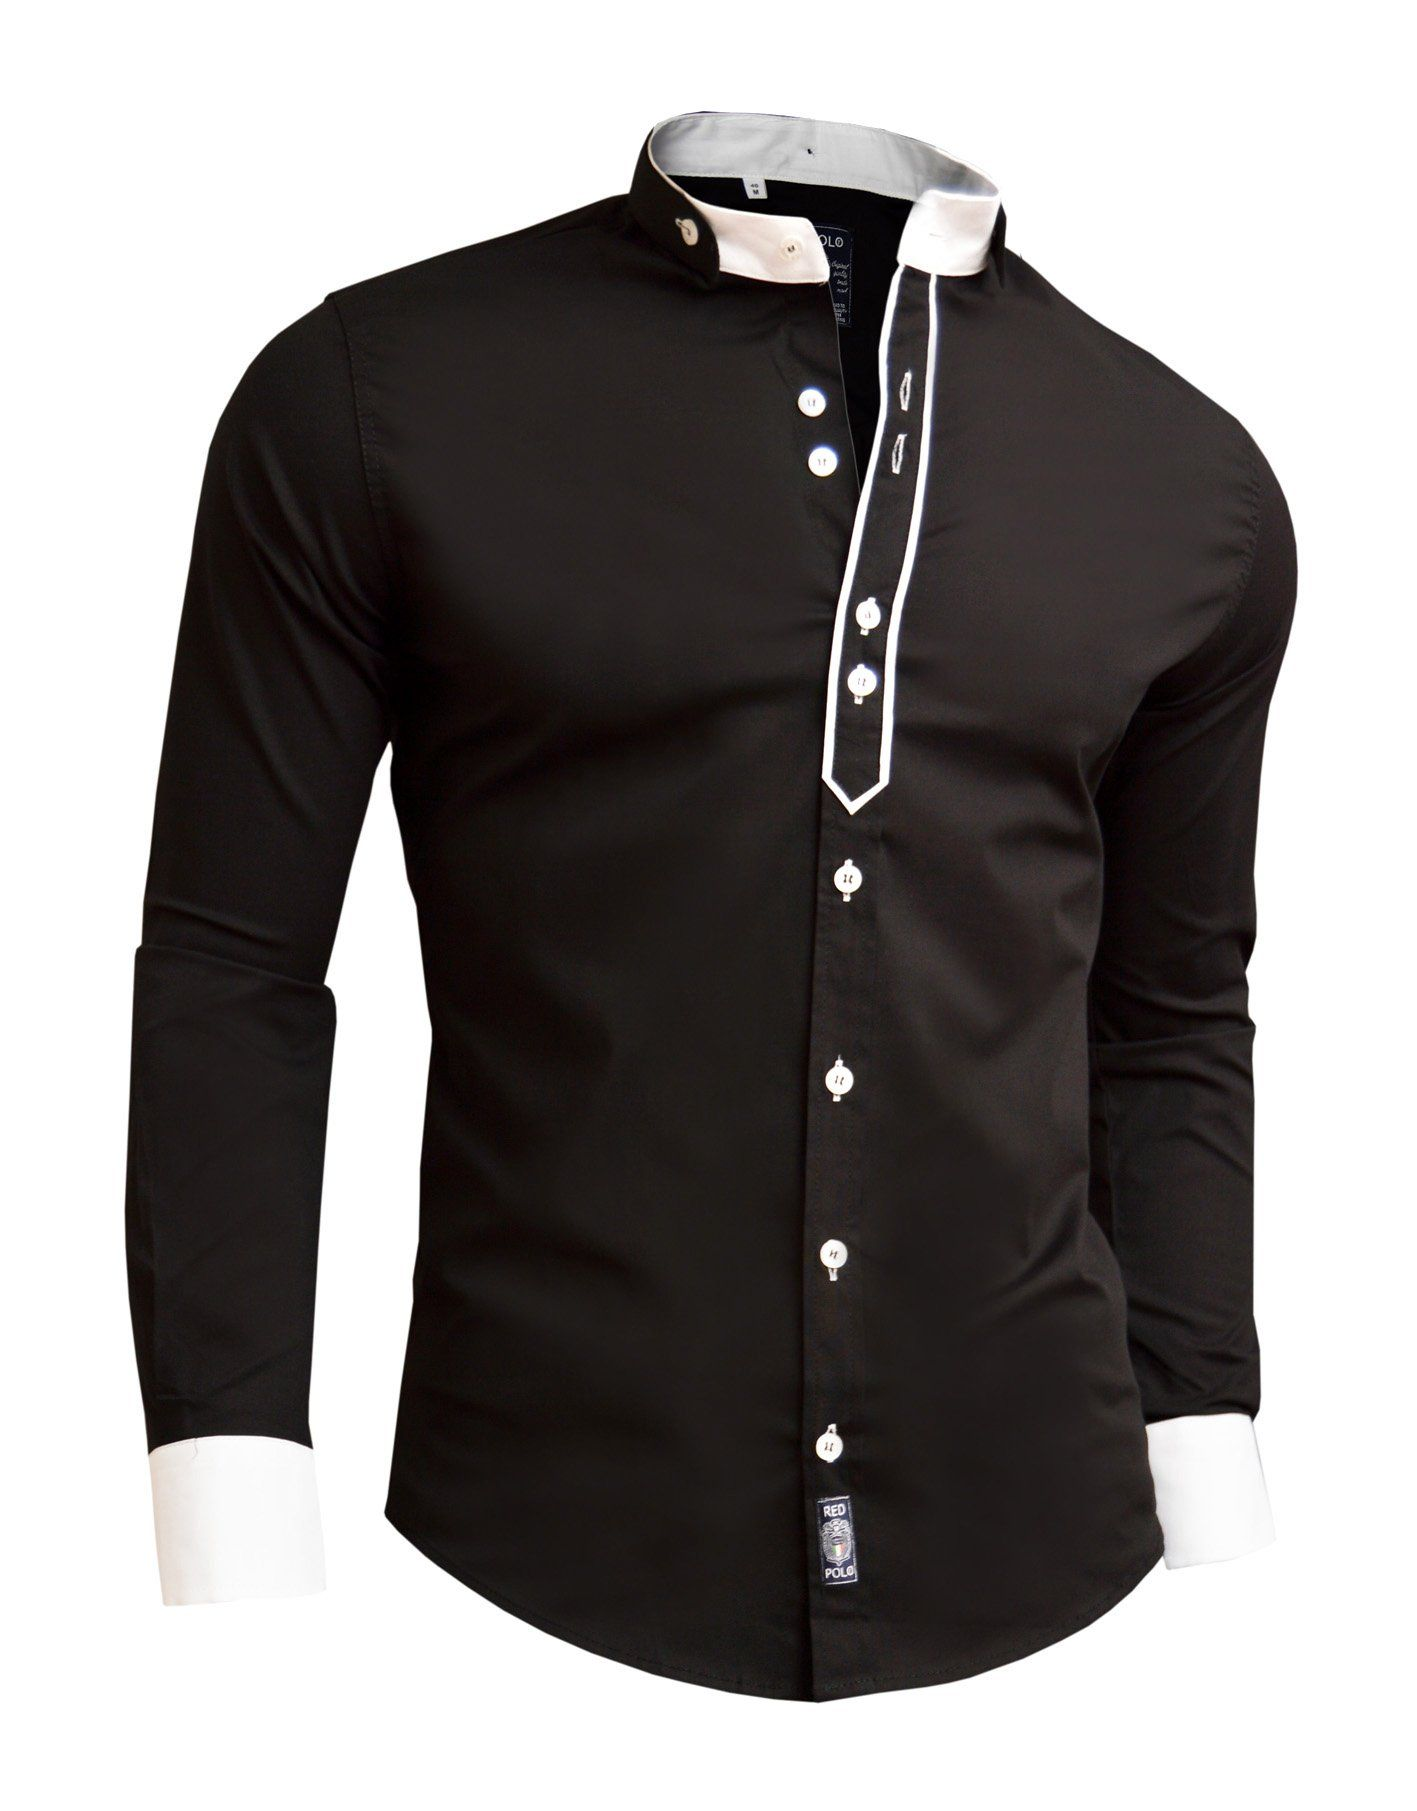 9ef7a6a7 Designer Men Casual Formal Double Cuffs Grandad Band Collar Shirt Elegant  Tie DR: Amazon.co.uk: Clothing